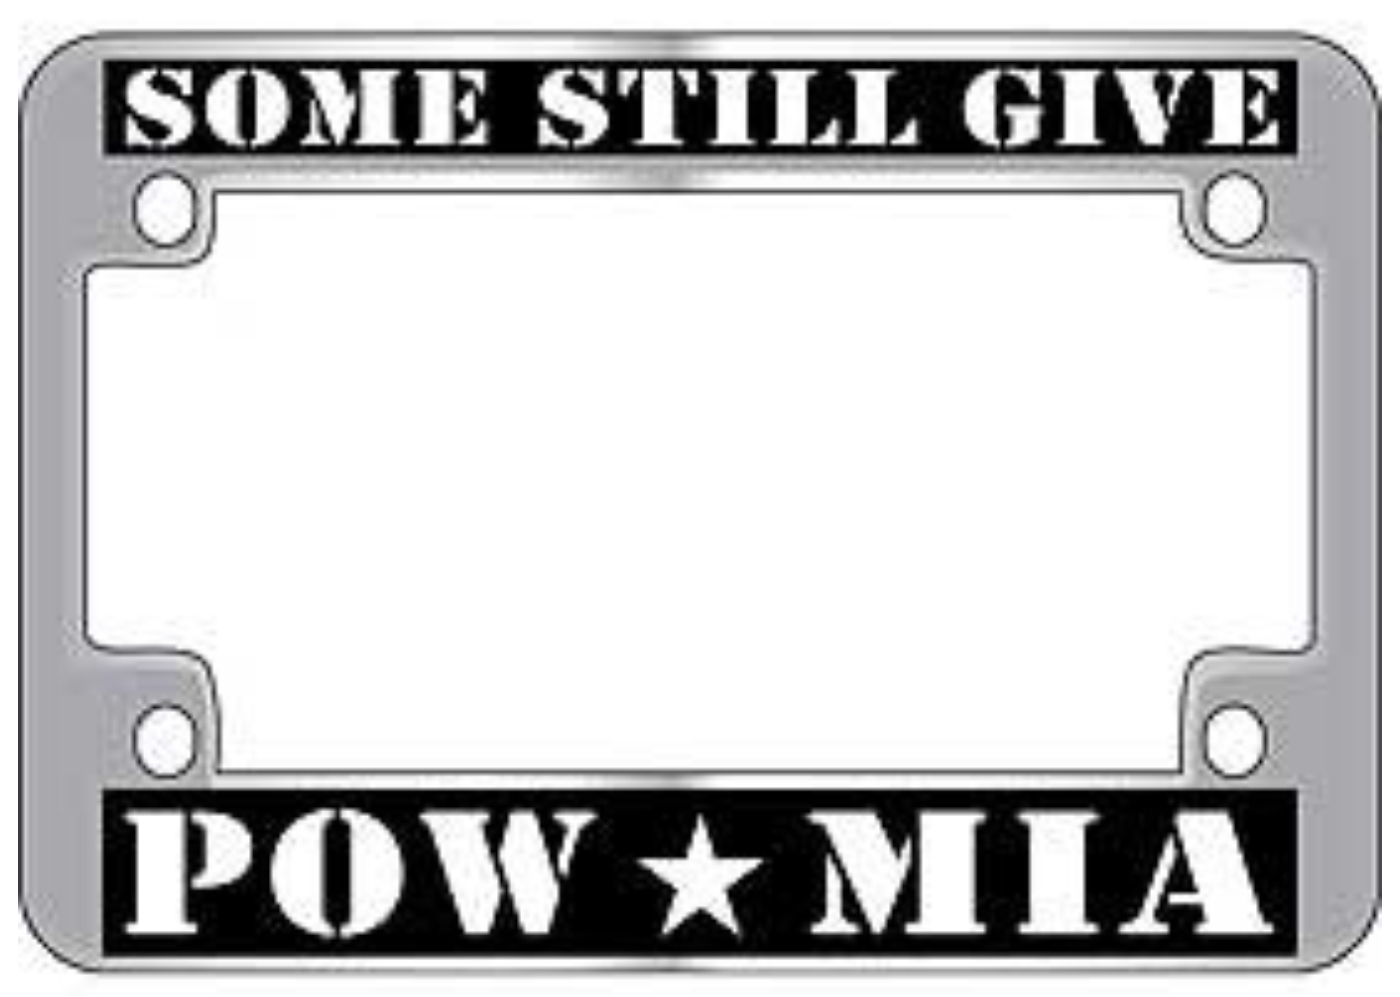 POW MIA Some Still Give Motorcycle License Plate Frame